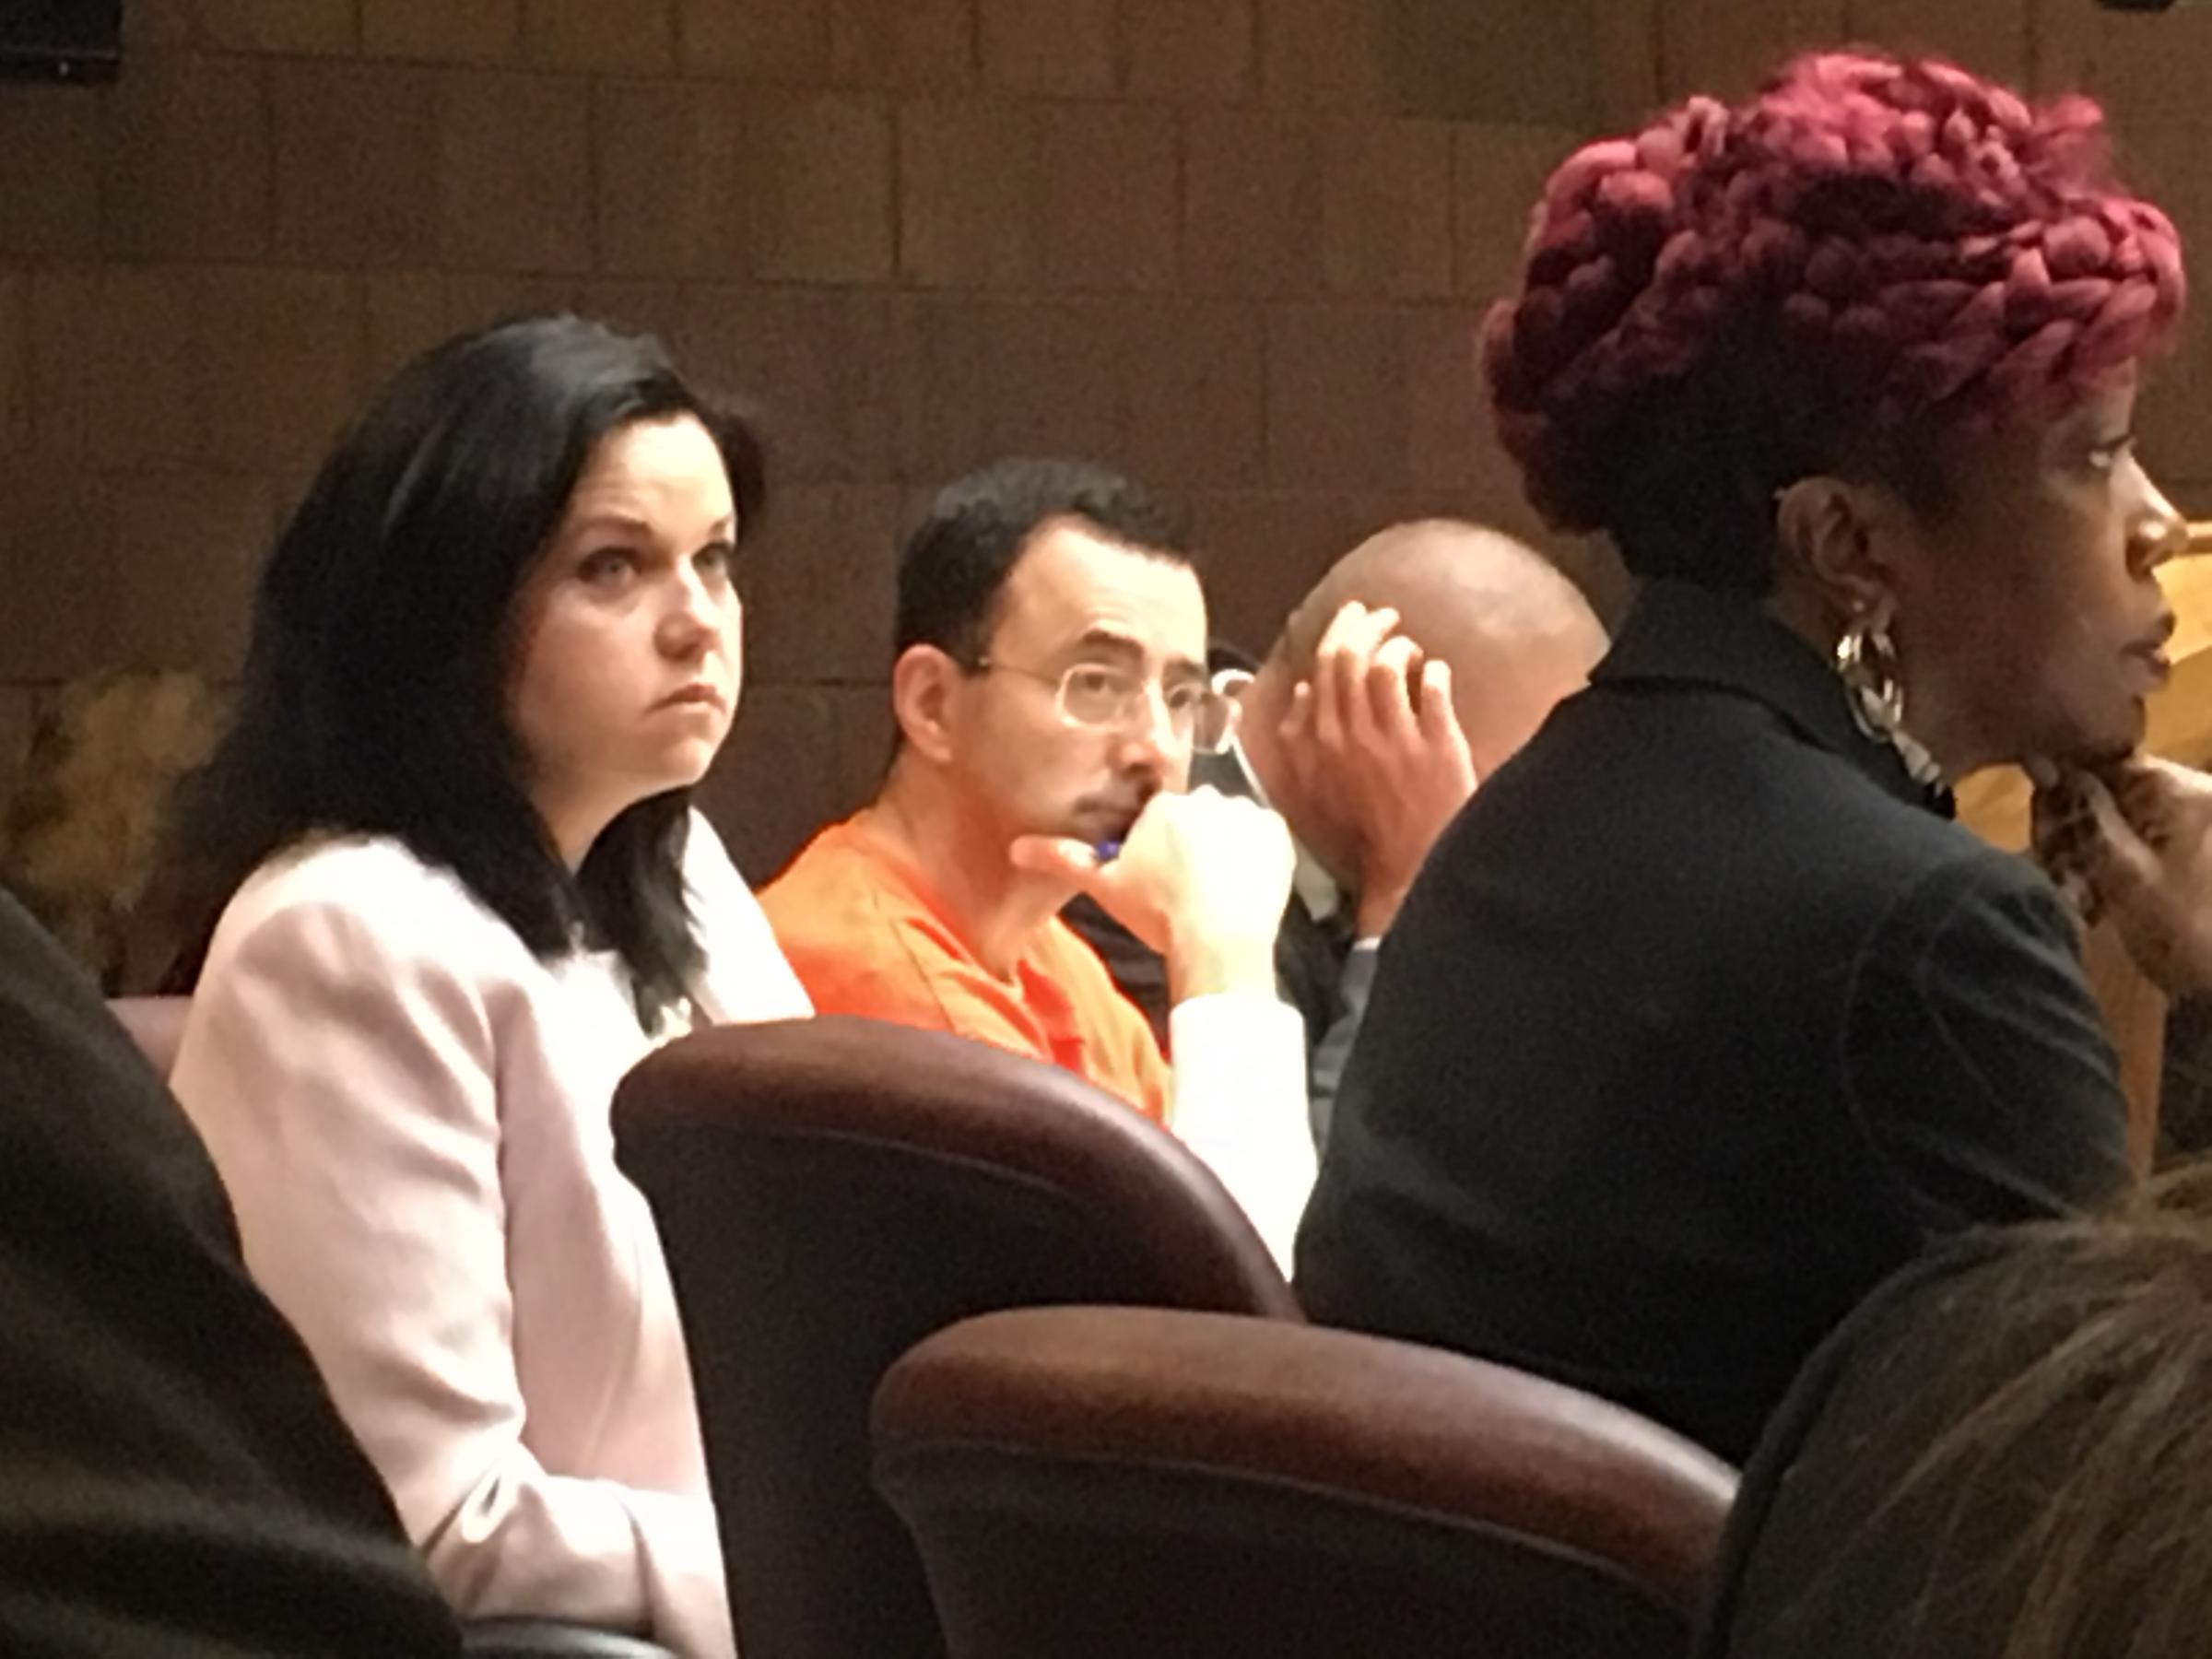 The Latest: Larry Nassar Denies Inappropriately Touching Gymnasts | WKAR